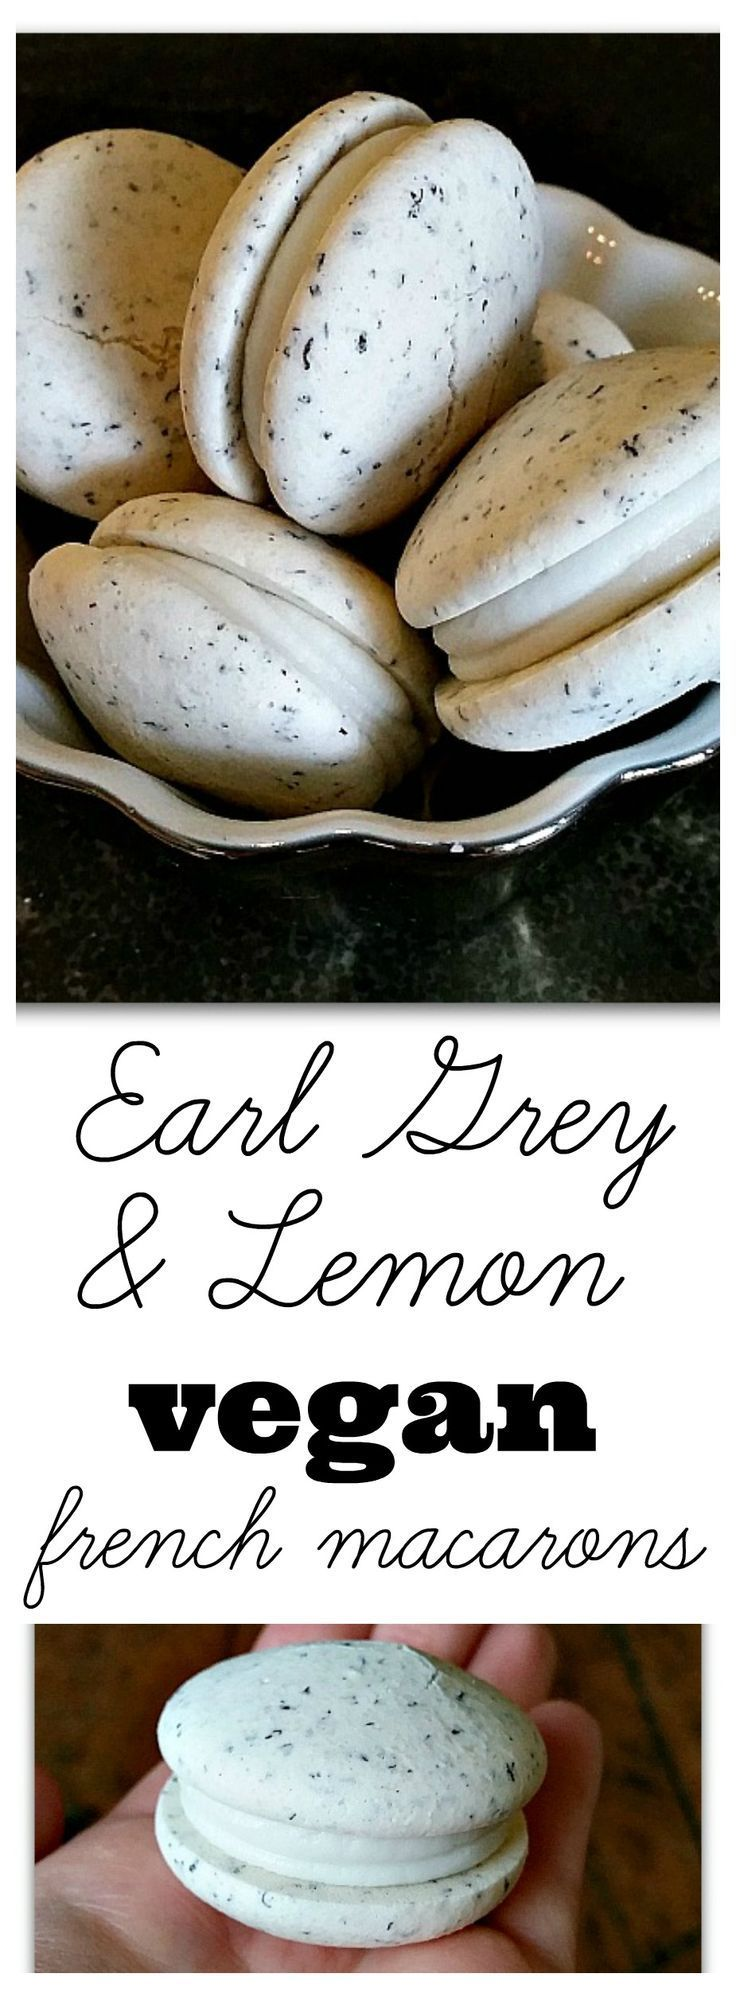 Vegan French Macarons - Earl Grey with Lemon Filling! Out of all the egg-free macaron recipes, this one tastes the most authentic! #aquafaba #glutenfree